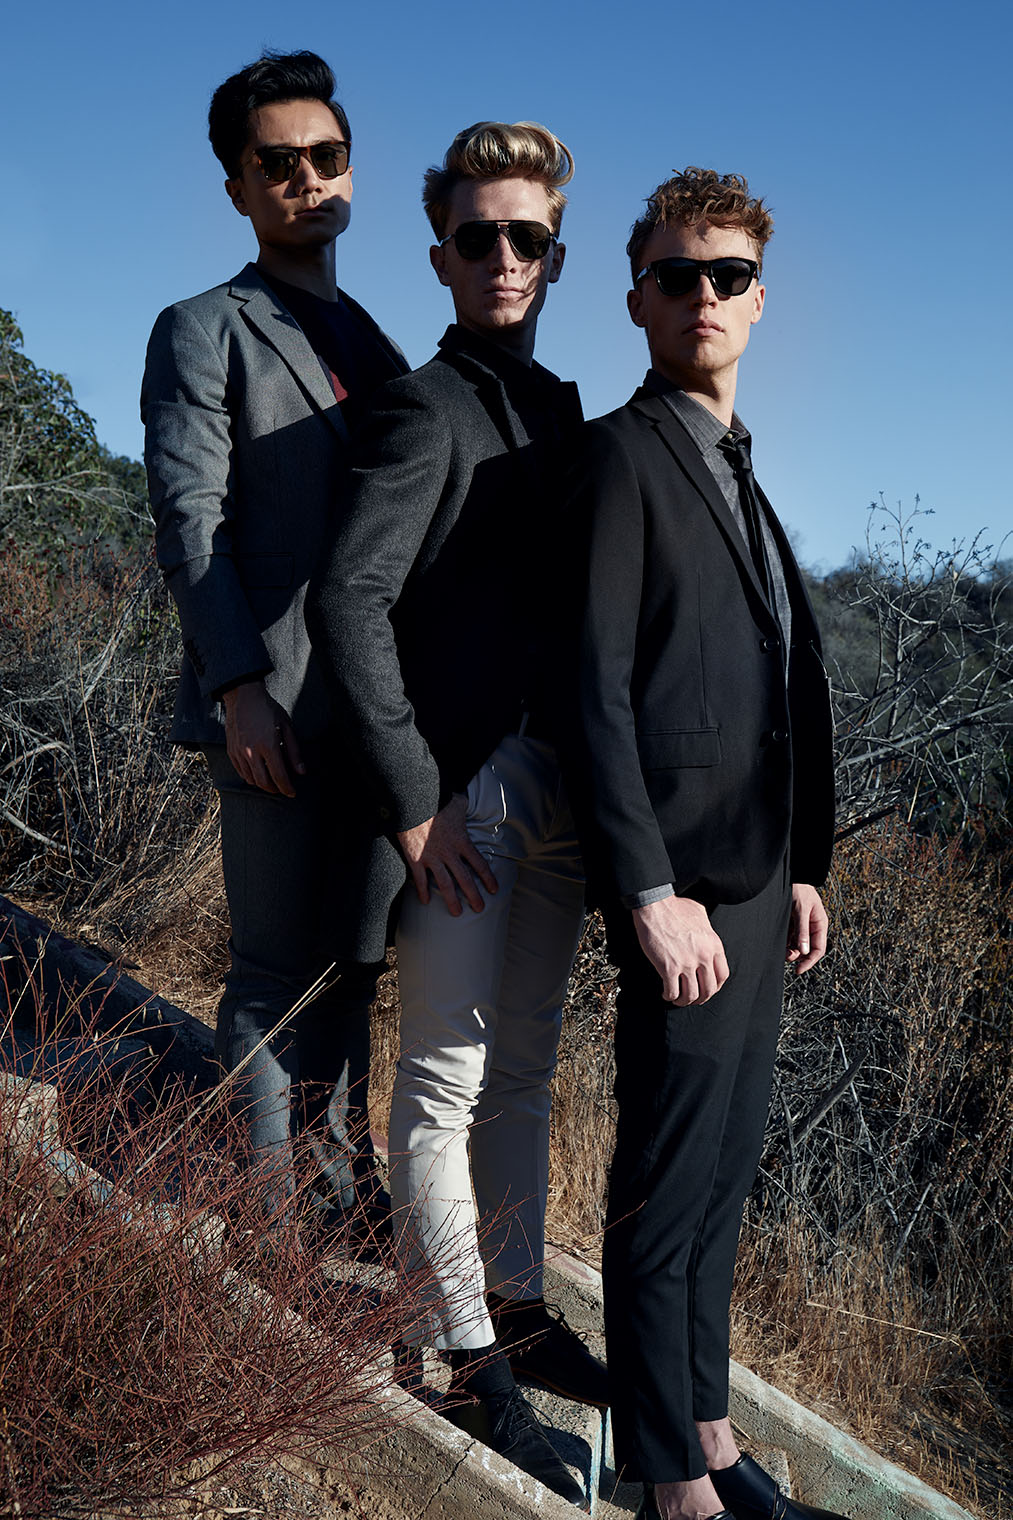 Three good friends, well dressed and fashionable men at mensstyle fashion shoot in LA